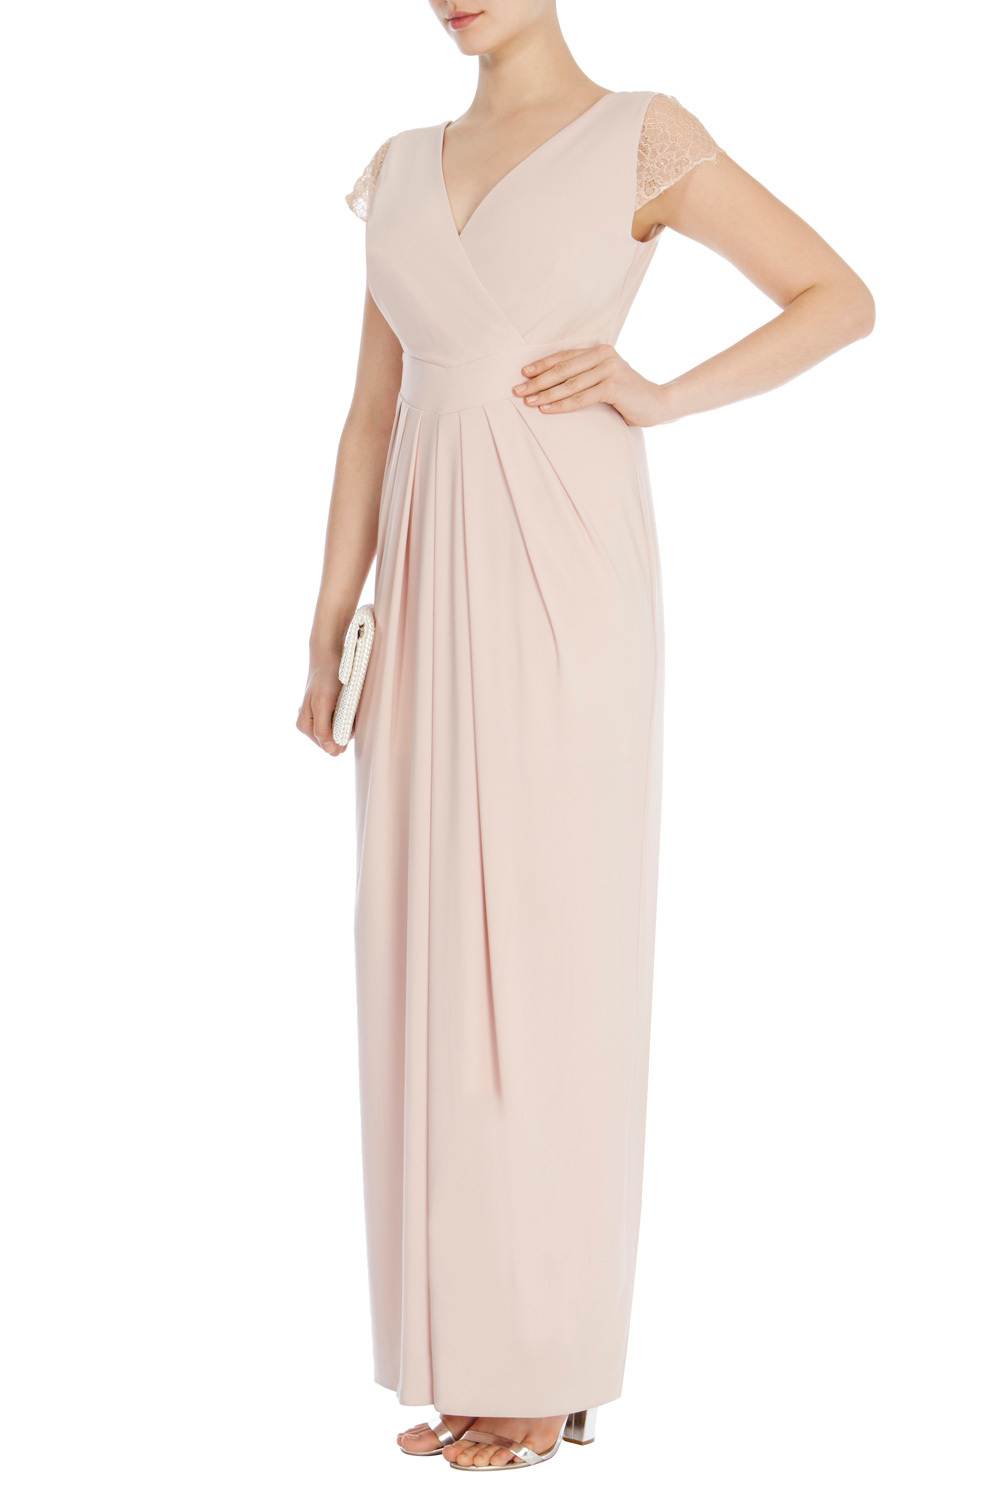 Cherina Jersey Maxi Dress Sl - neckline: v-neck; sleeve style: capped; pattern: plain; style: maxi dress; length: ankle length; predominant colour: blush; occasions: evening; fit: body skimming; fibres: polyester/polyamide - stretch; sleeve length: short sleeve; pattern type: fabric; texture group: jersey - stretchy/drapey; shoulder detail: sheer at shoulder; season: s/s 2016; wardrobe: event